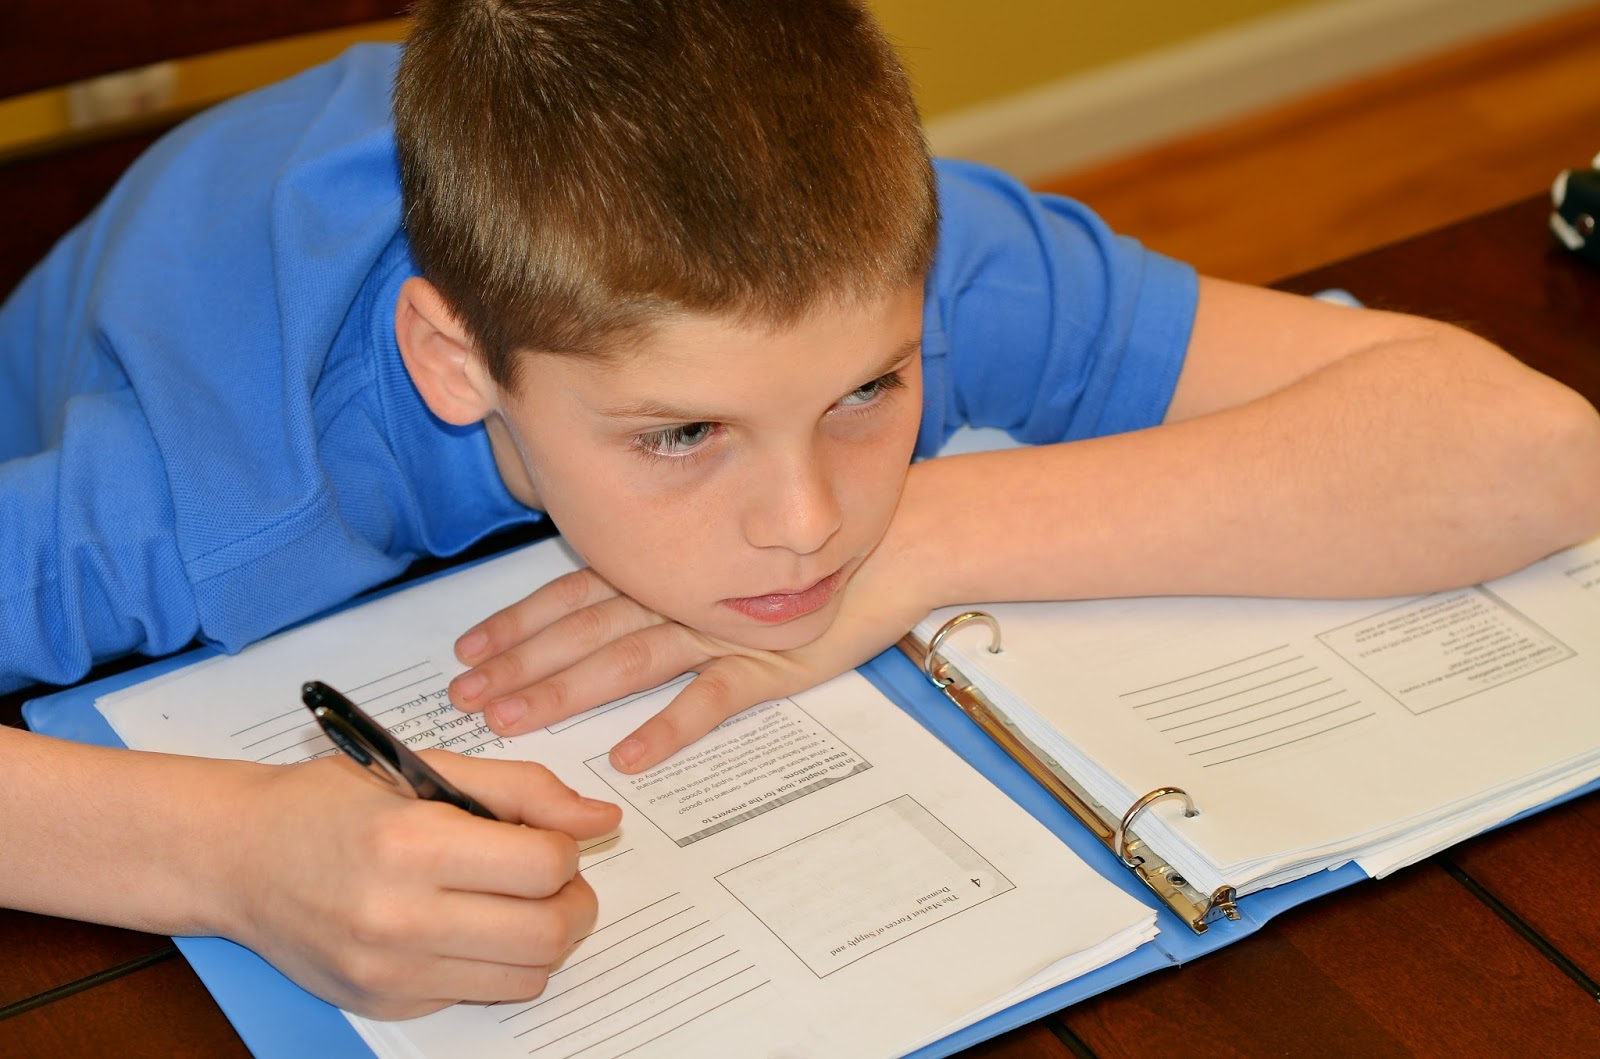 Tips On How To Help Your Child With Homework